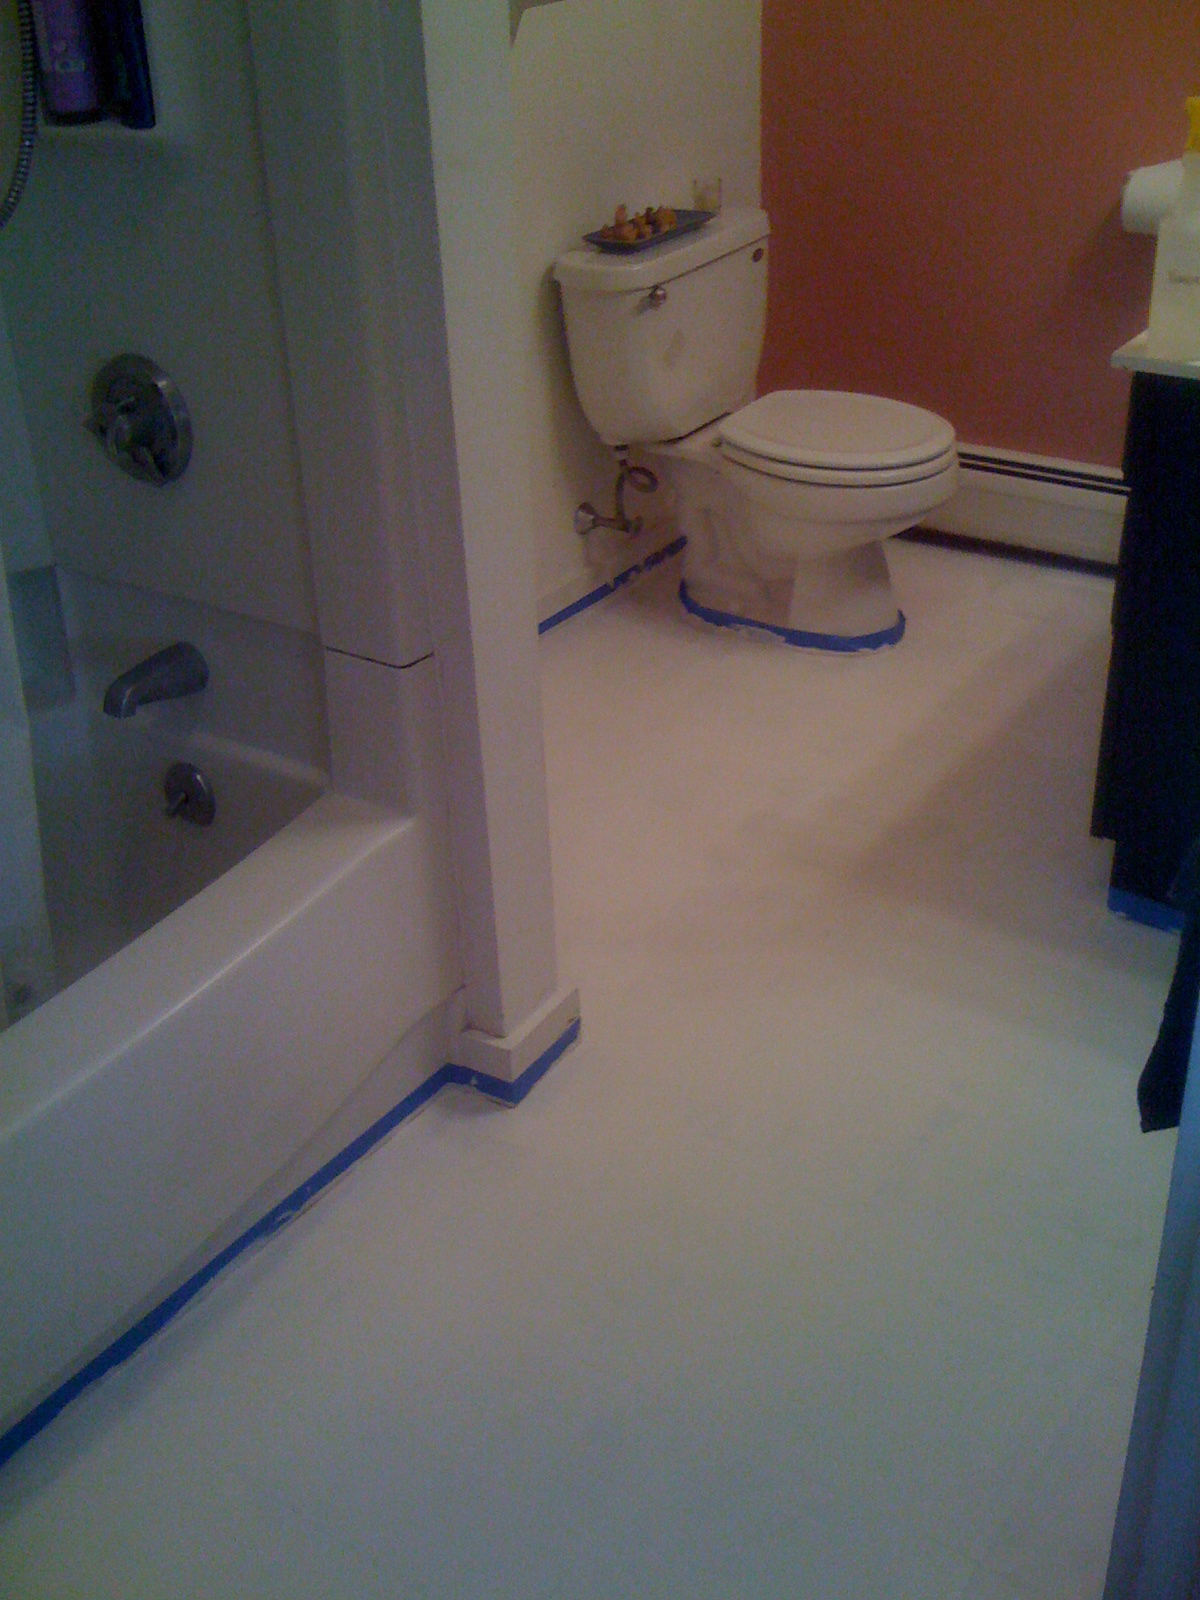 Vinyl Bathroom Floors Diy Painting Old Vinyl Floor Tiles Mary Wiseman Designs